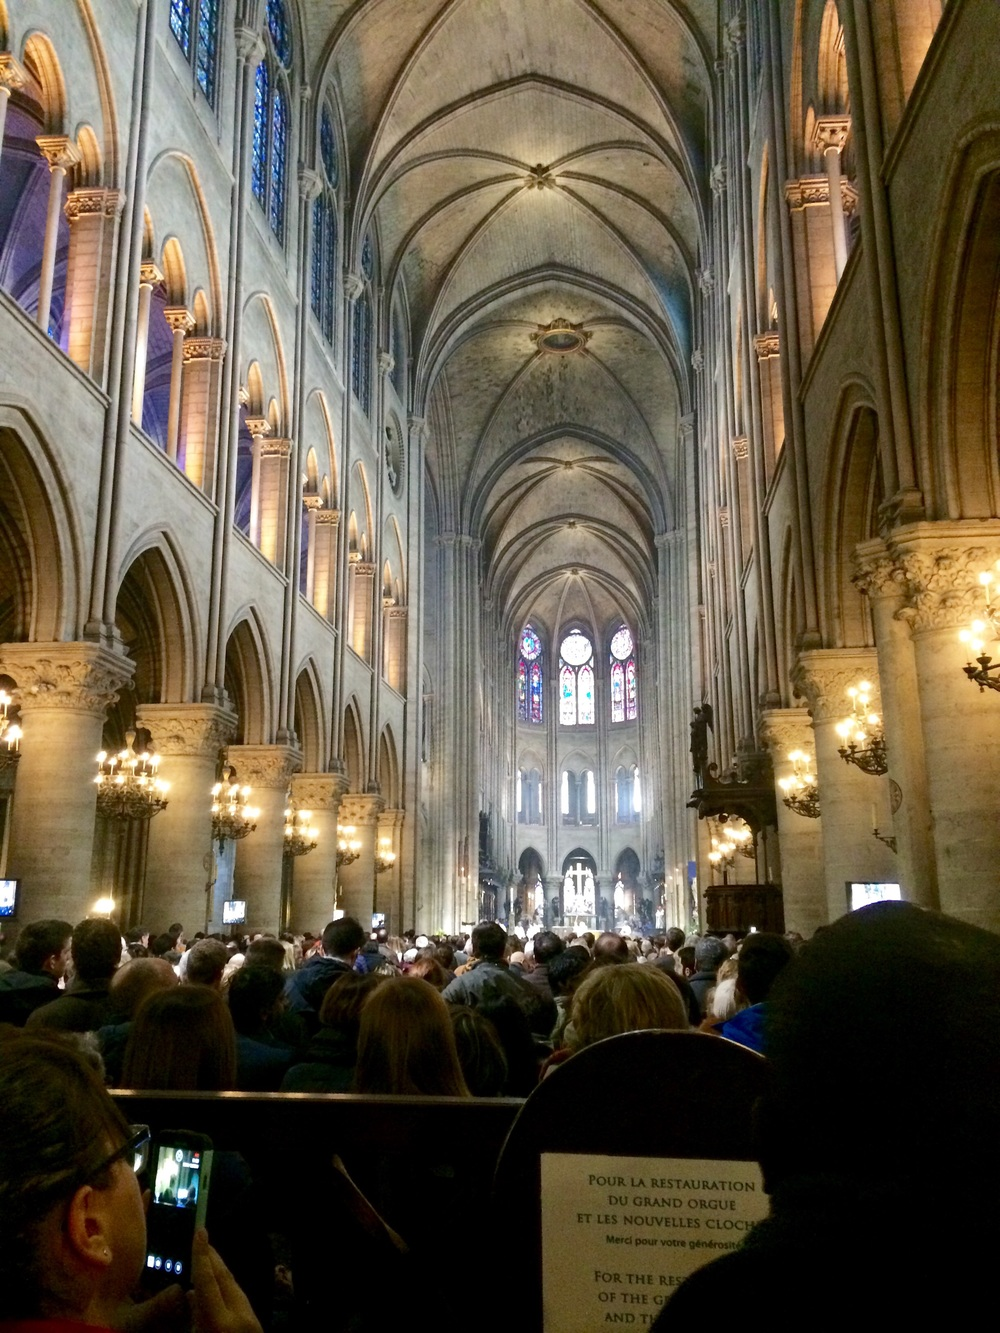 Inside Notre-Dame for Easter.